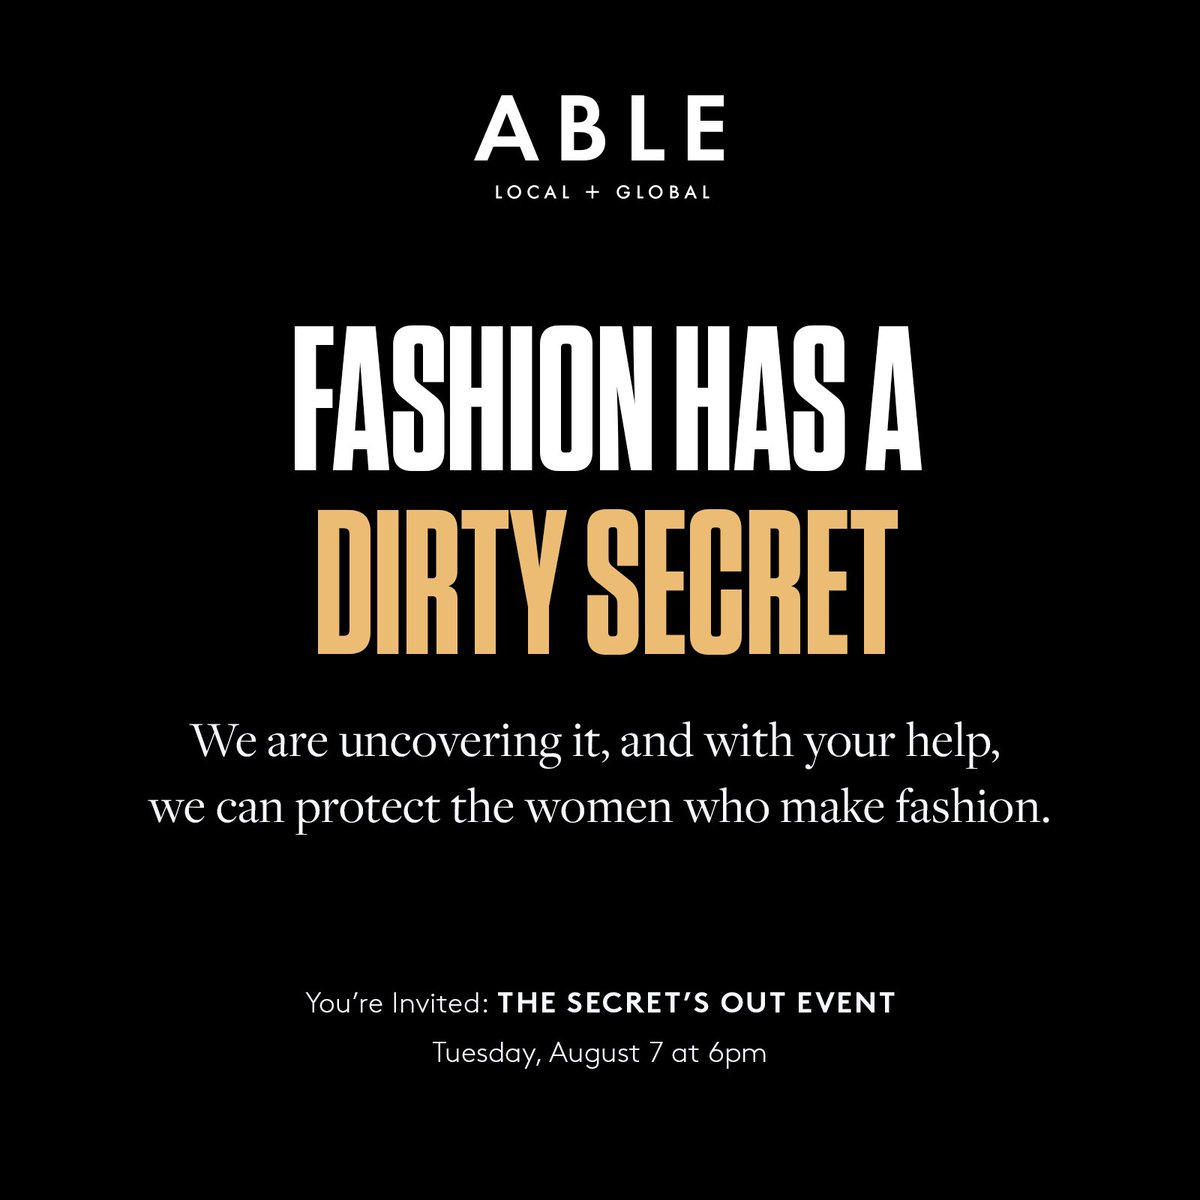 We are uncovering it, and with your help, we can protect the women who make fashion. You're invited next Tuesday to join us --> https://bit.ly/2LHQQZI ...